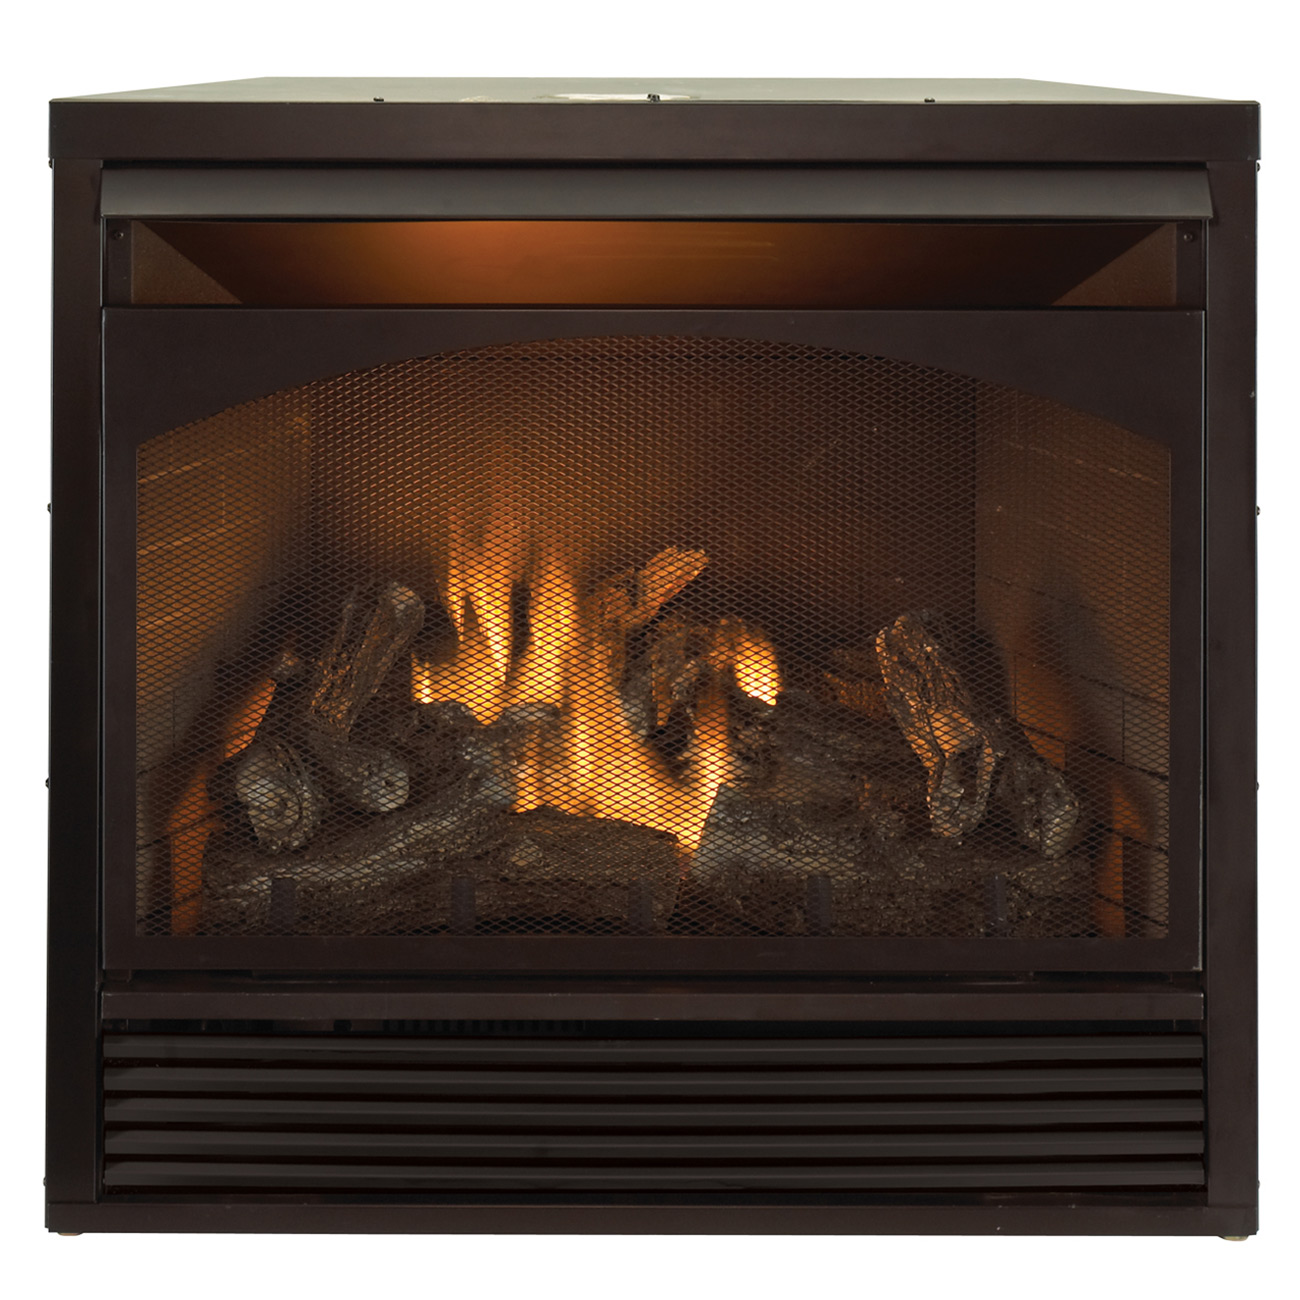 Running Gas Line To Fireplace Convert Your Fireplace To Natural Gas With A Fireplace Insert